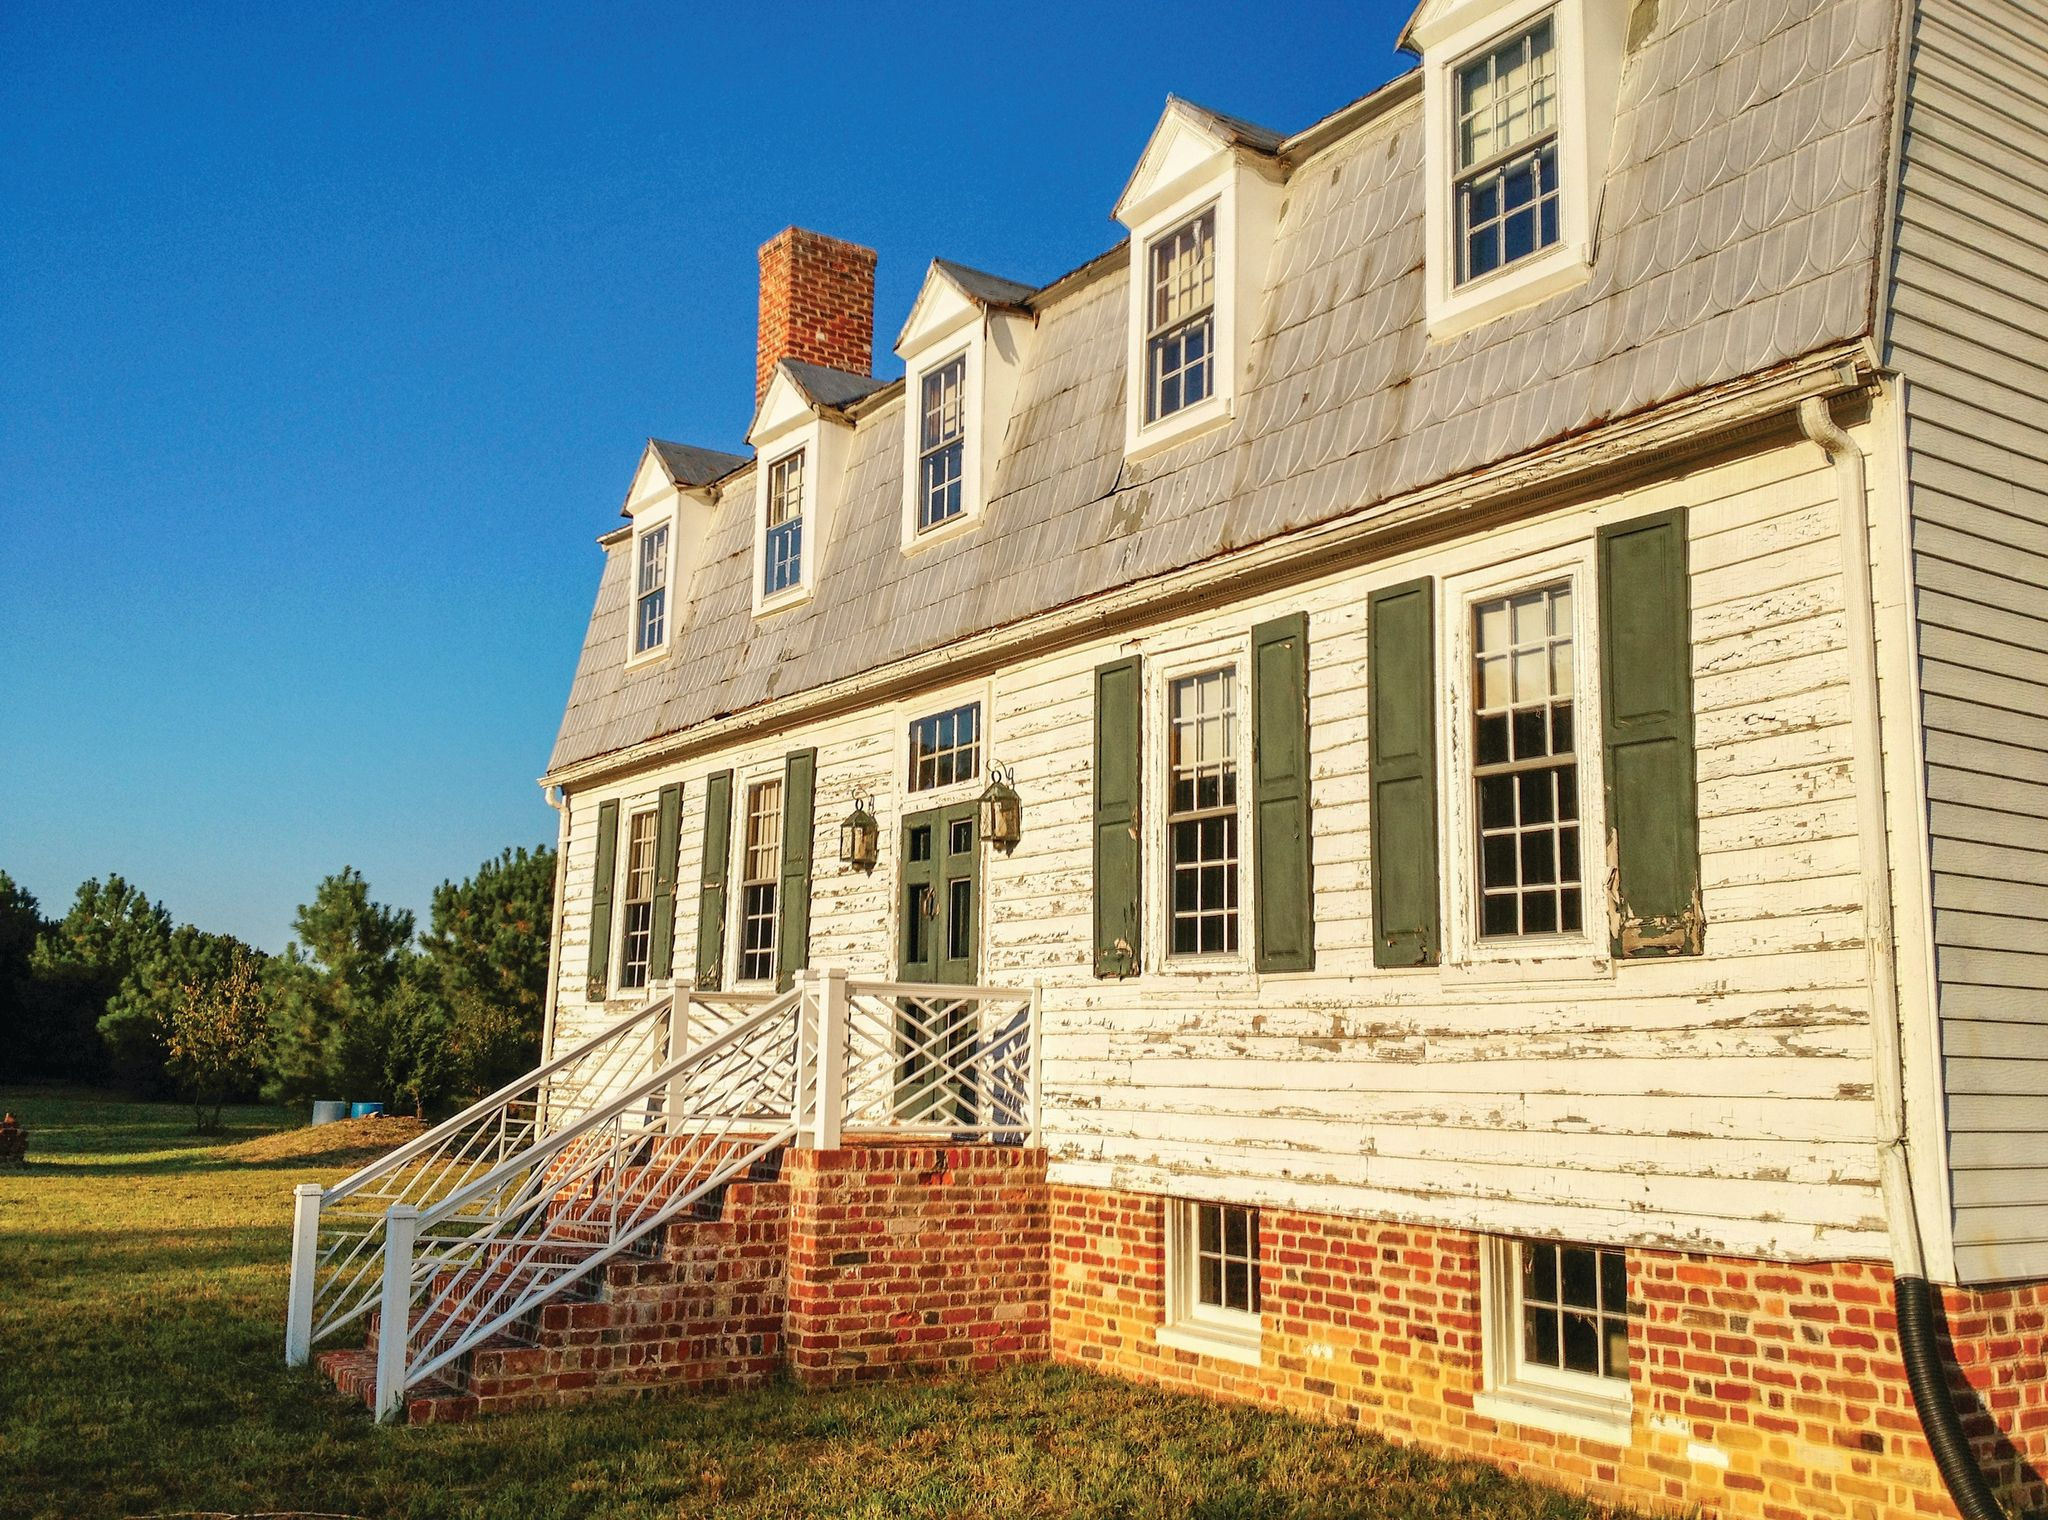 Tappahannock,Va_David-Broad_gn